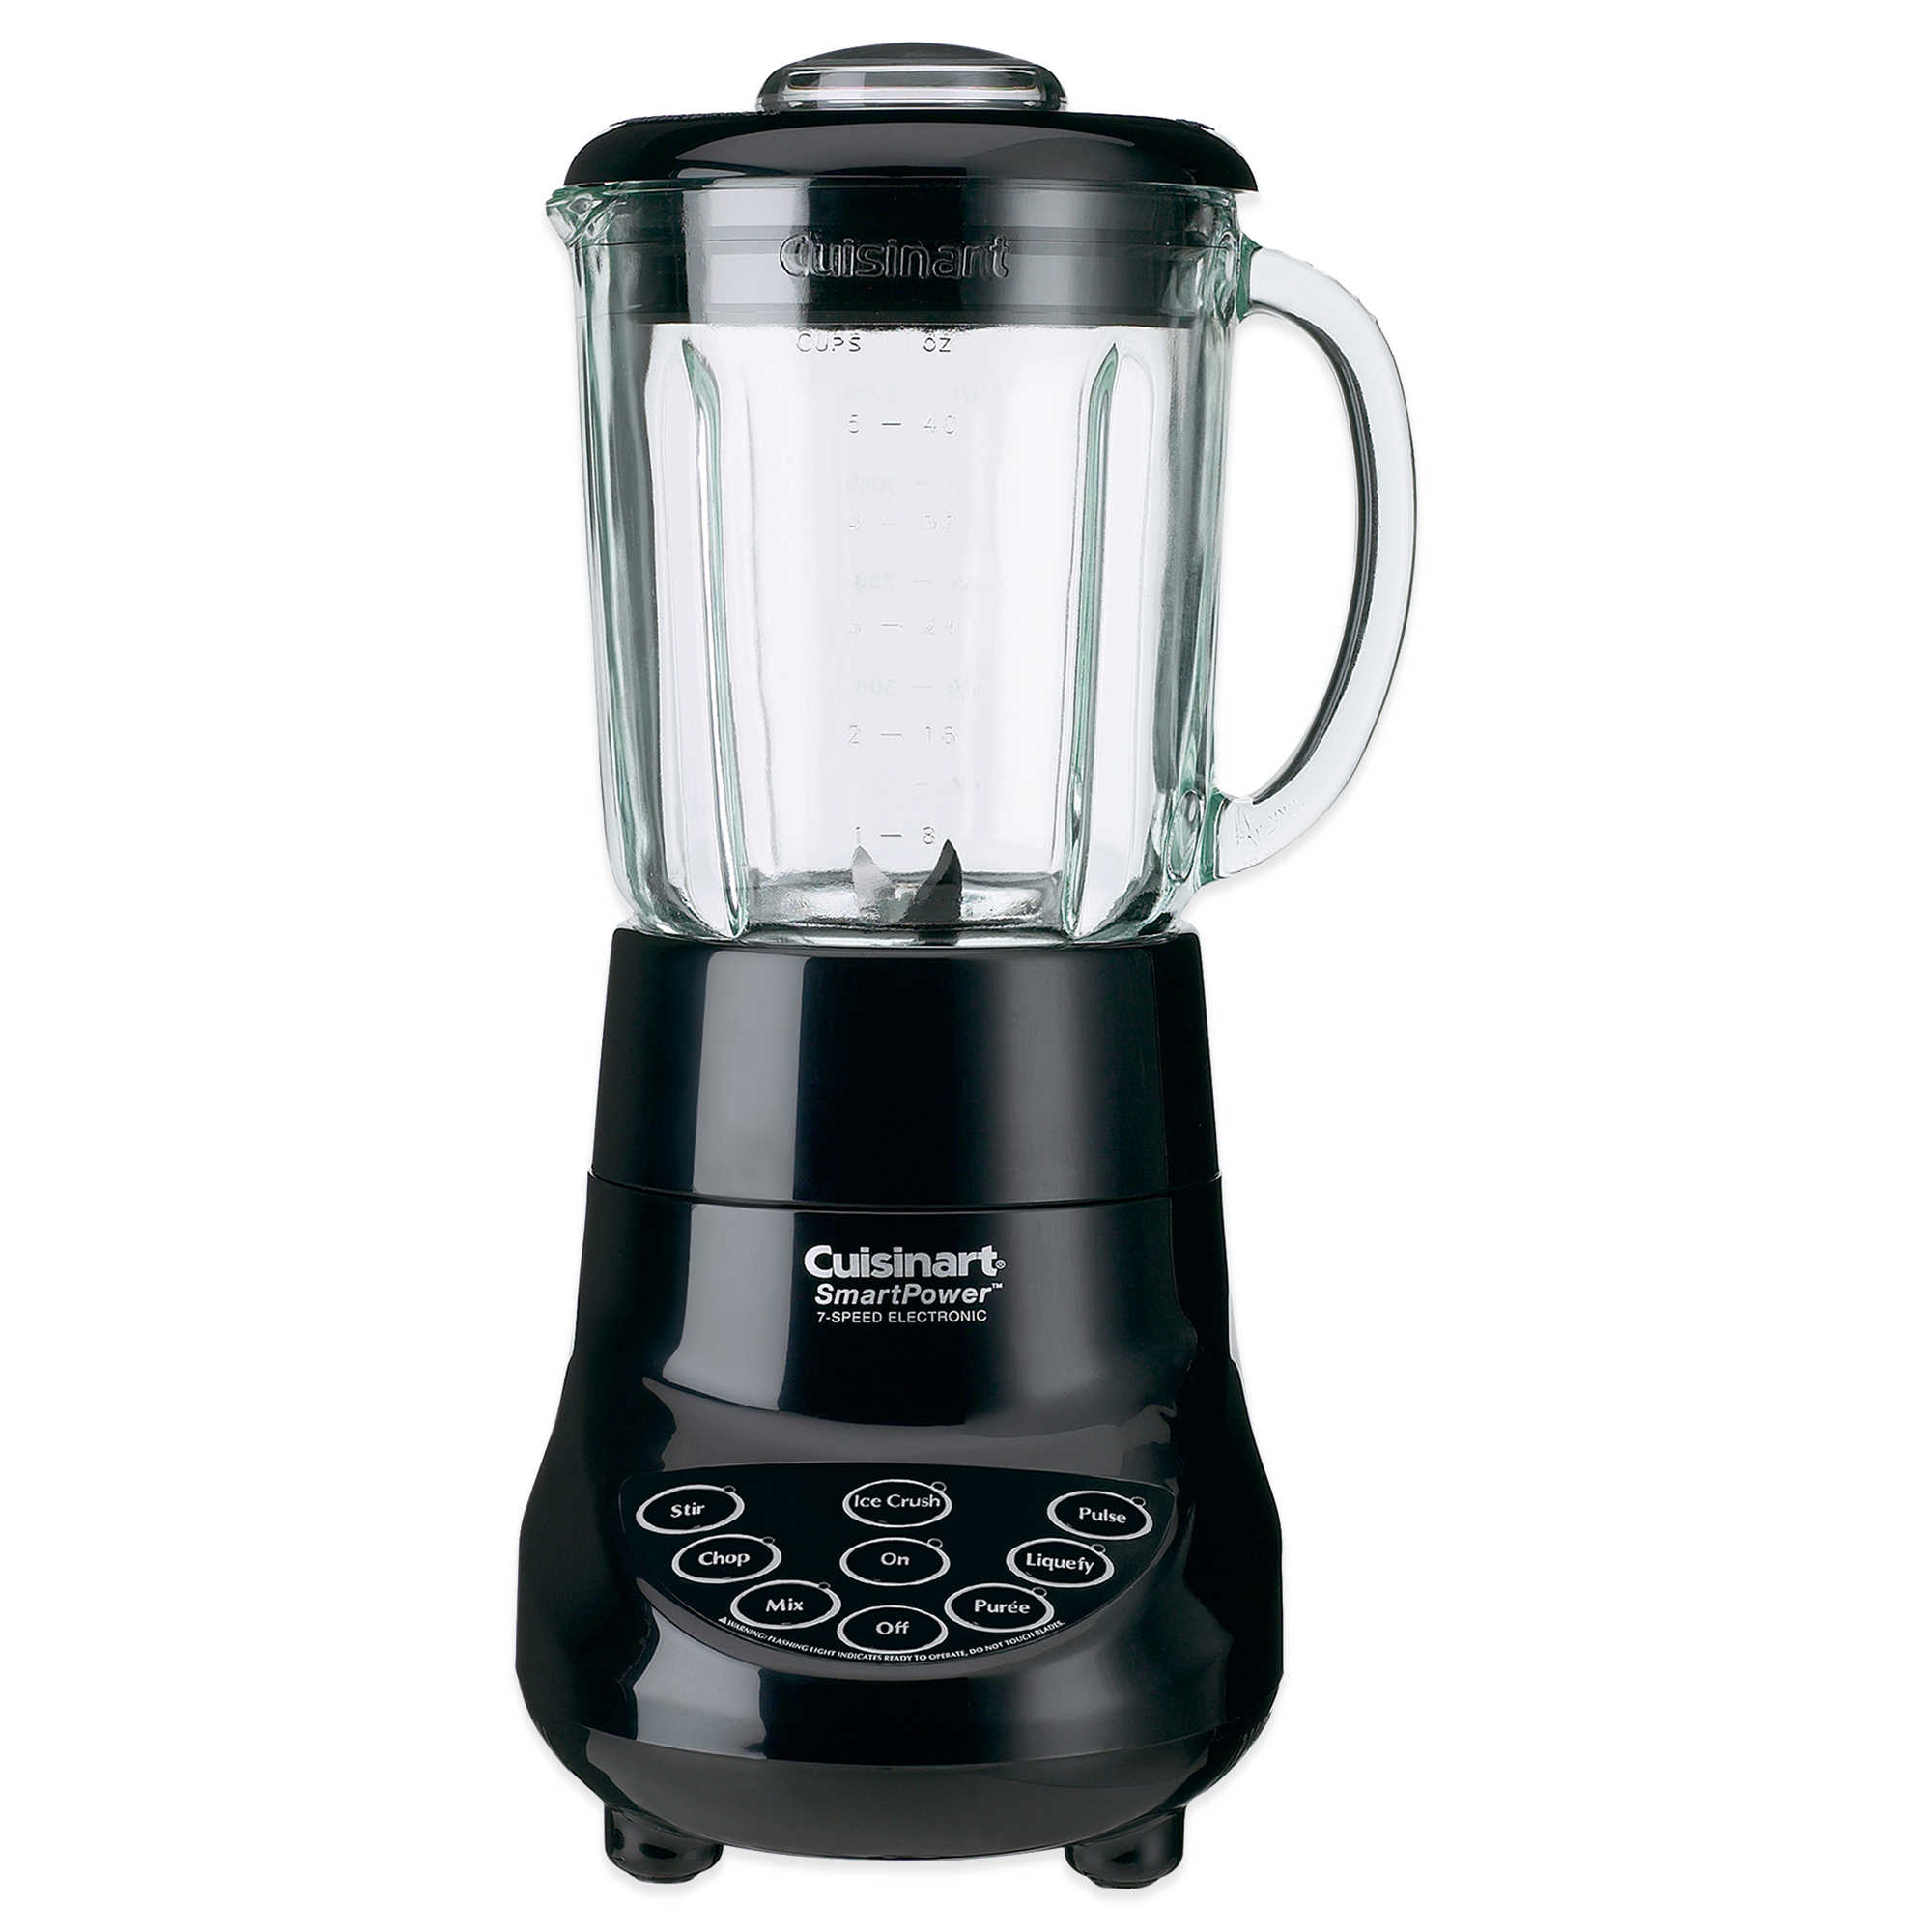 Cuisinart SPB-7 SmartPower 7-Speed Bar Blender, Black (Certified Refurbished)